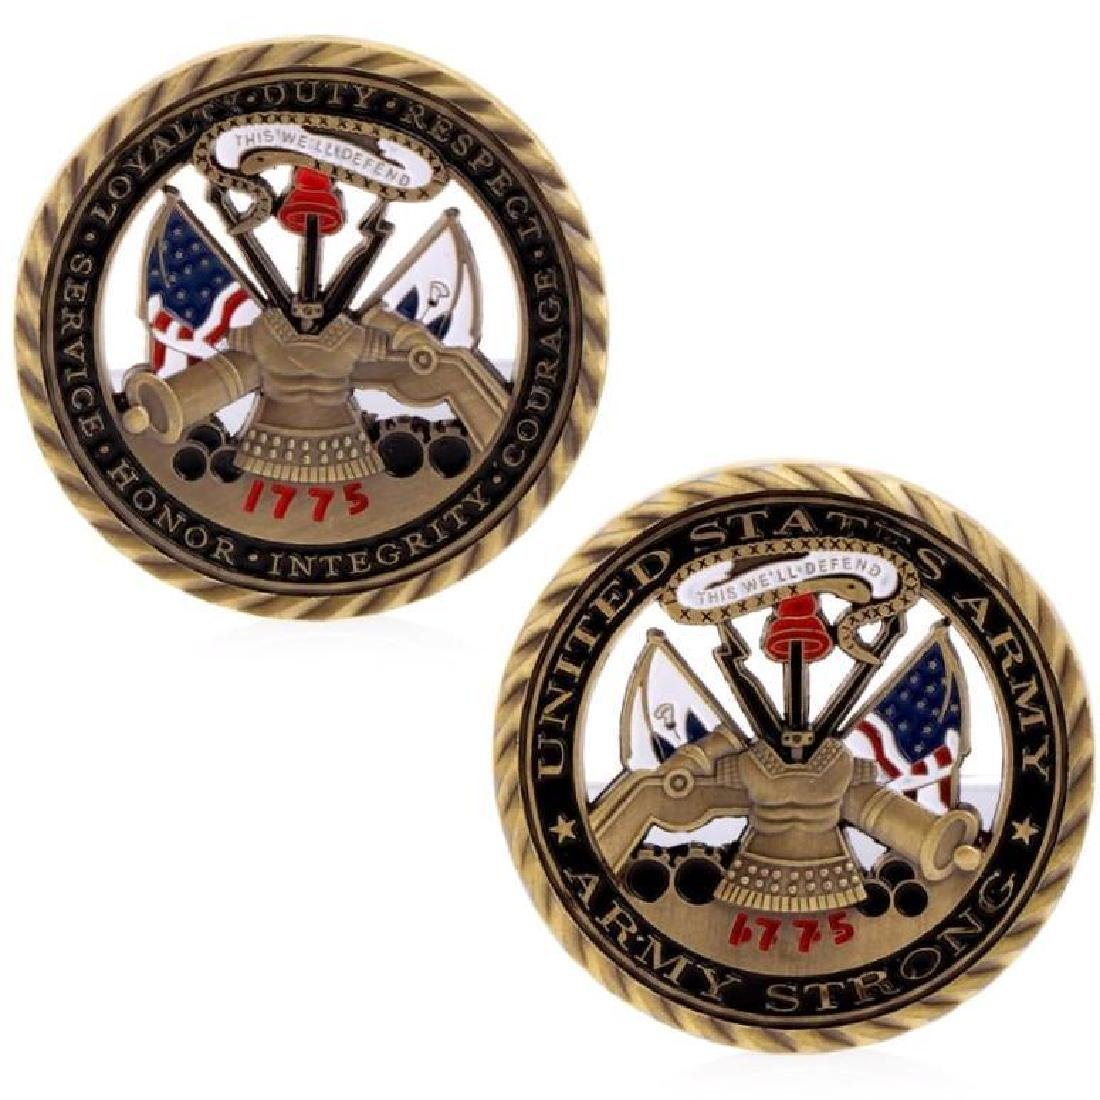 1775 USA Army Values Challenge Coin